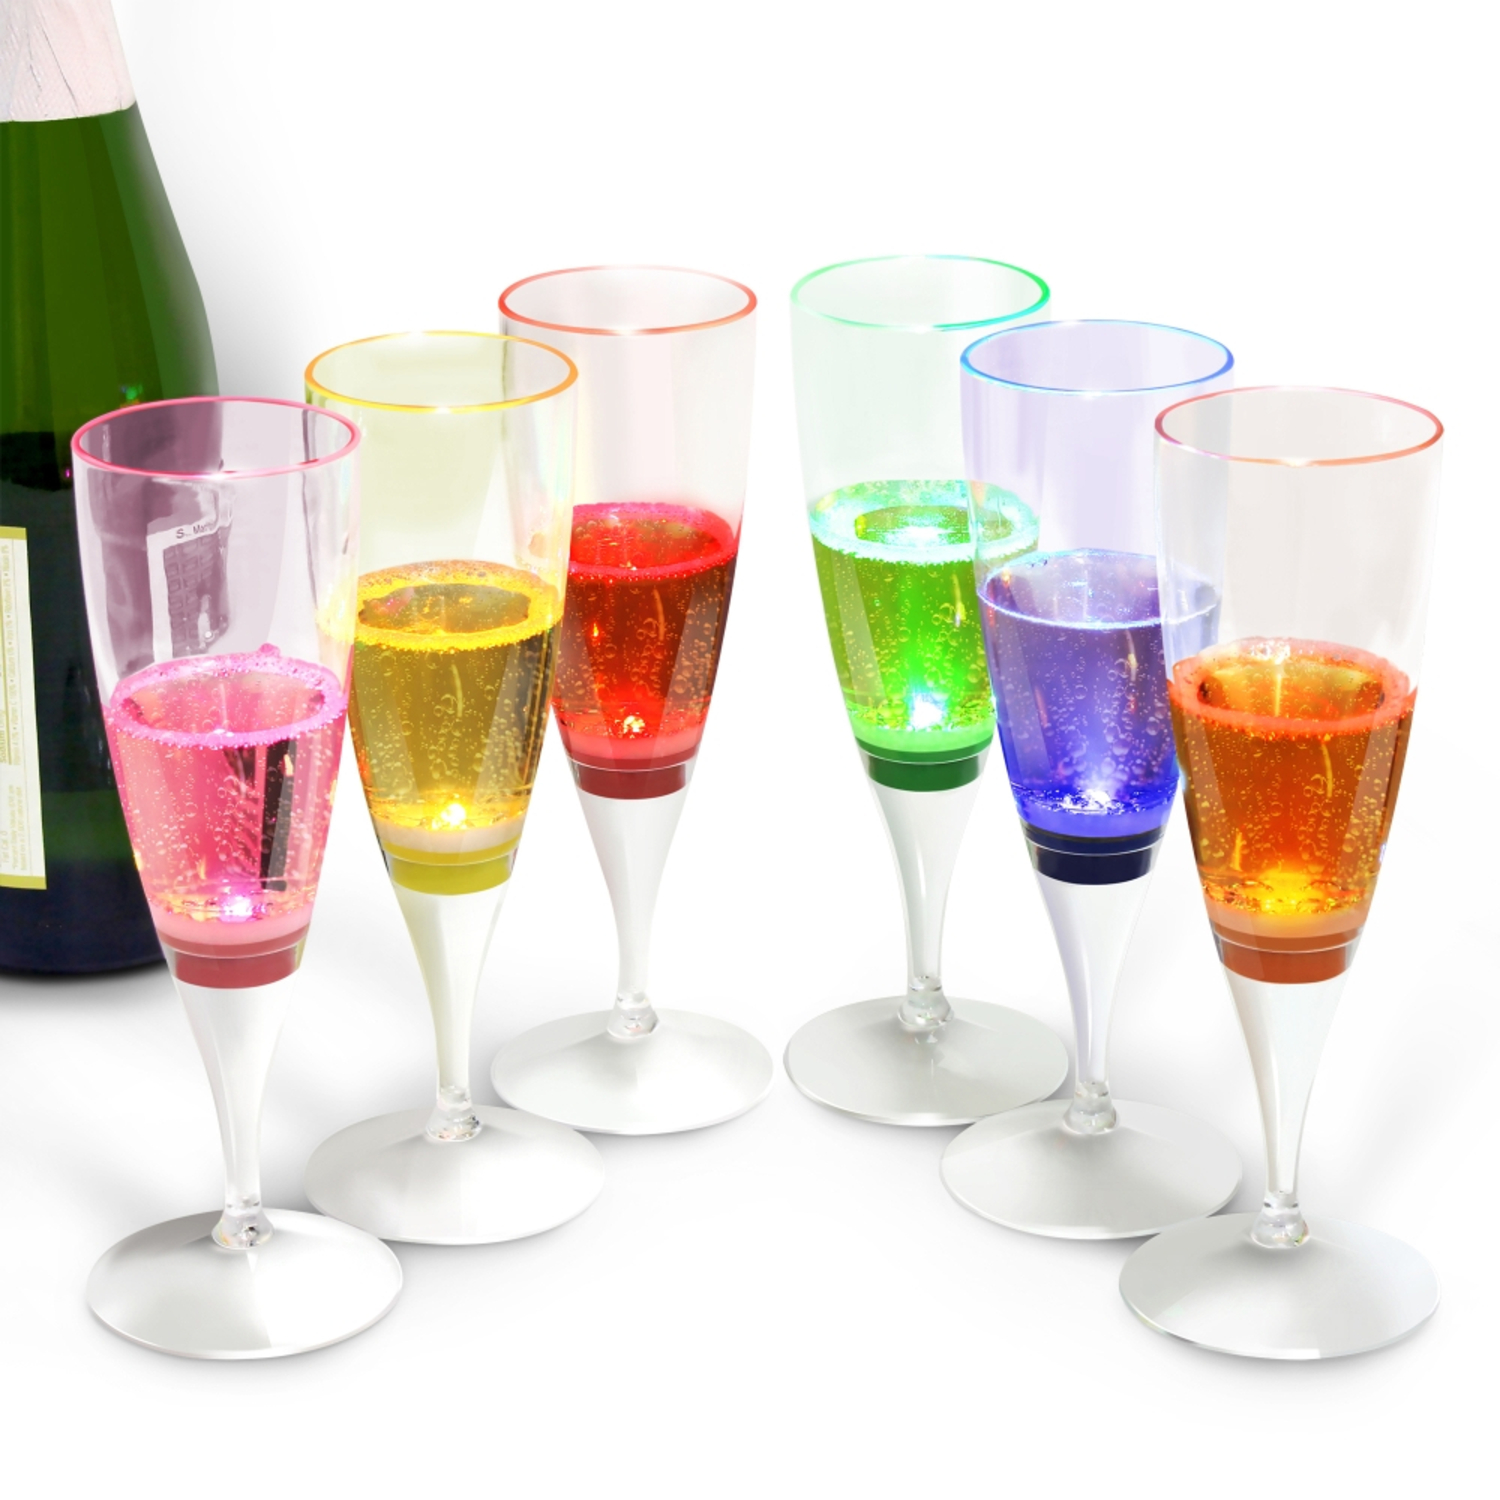 INNOKA [LED Champagne Flute] Clear Plastic Glass Like Champagne Flute (Set of 6 Multi-Color) LED Light Up Wine Champagne Liquid Activated Perfect for Wedding Party Pool Toasting Special Occassions